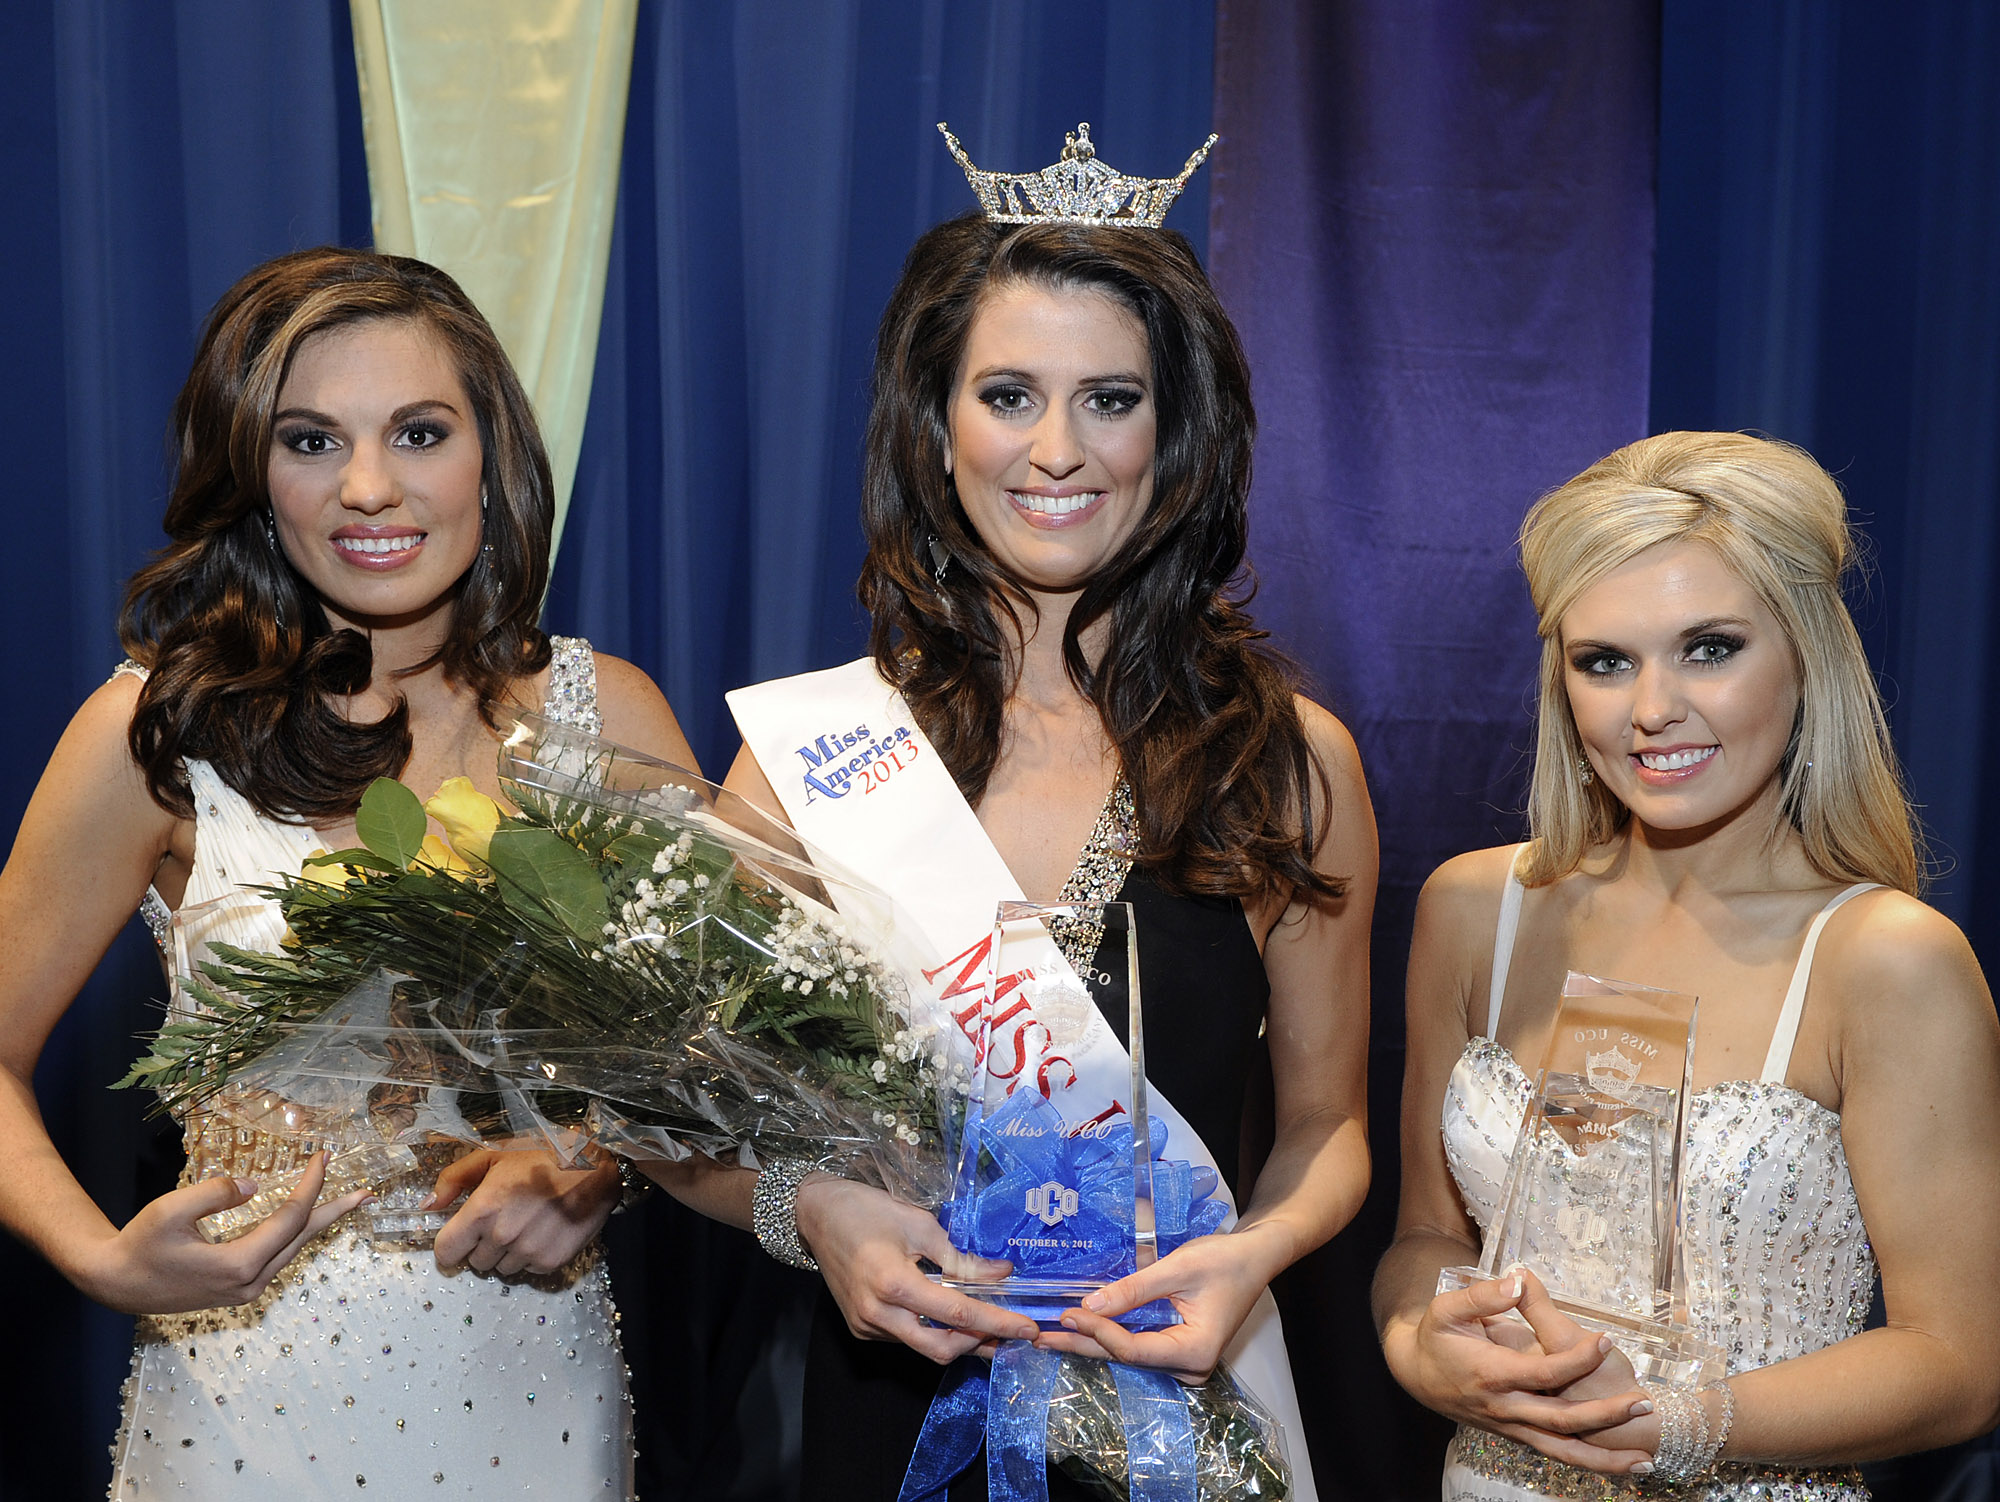 Allora Herrin (center), a senior from Blanchard, won the Miss UCO 2013 crown at the University of Central Oklahoma's annual scholarship pageant Oct. 6, with Autumn Circle (left), a sophomore from Blackwell, nabbing first runner-up and Ashleigh Hamil (right), a sophomore from Sand Springs, getting second runner-up.